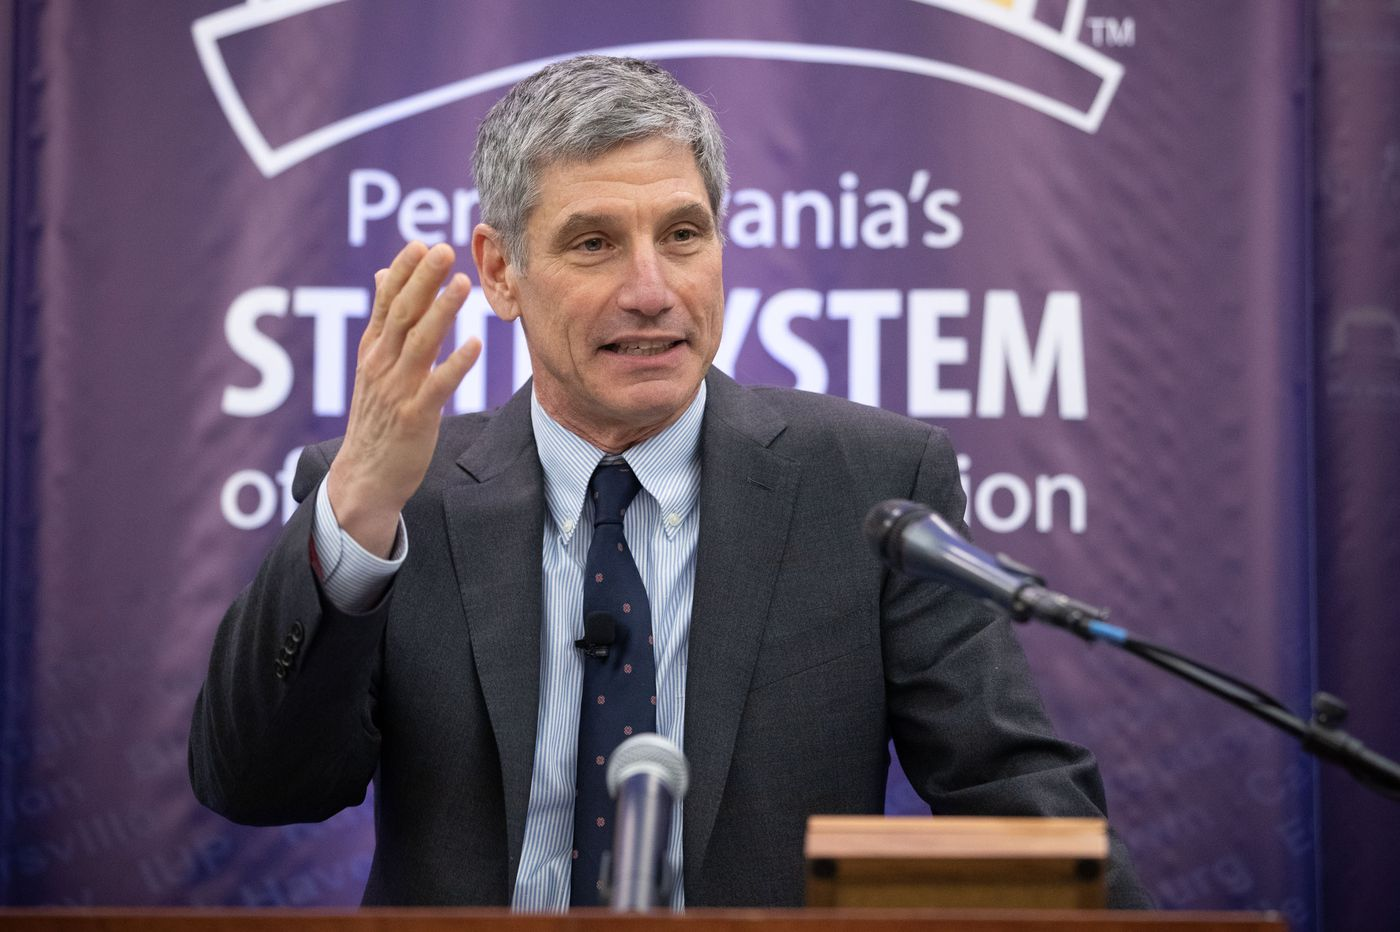 Reopening of Pennsylvania state universities will vary by campus